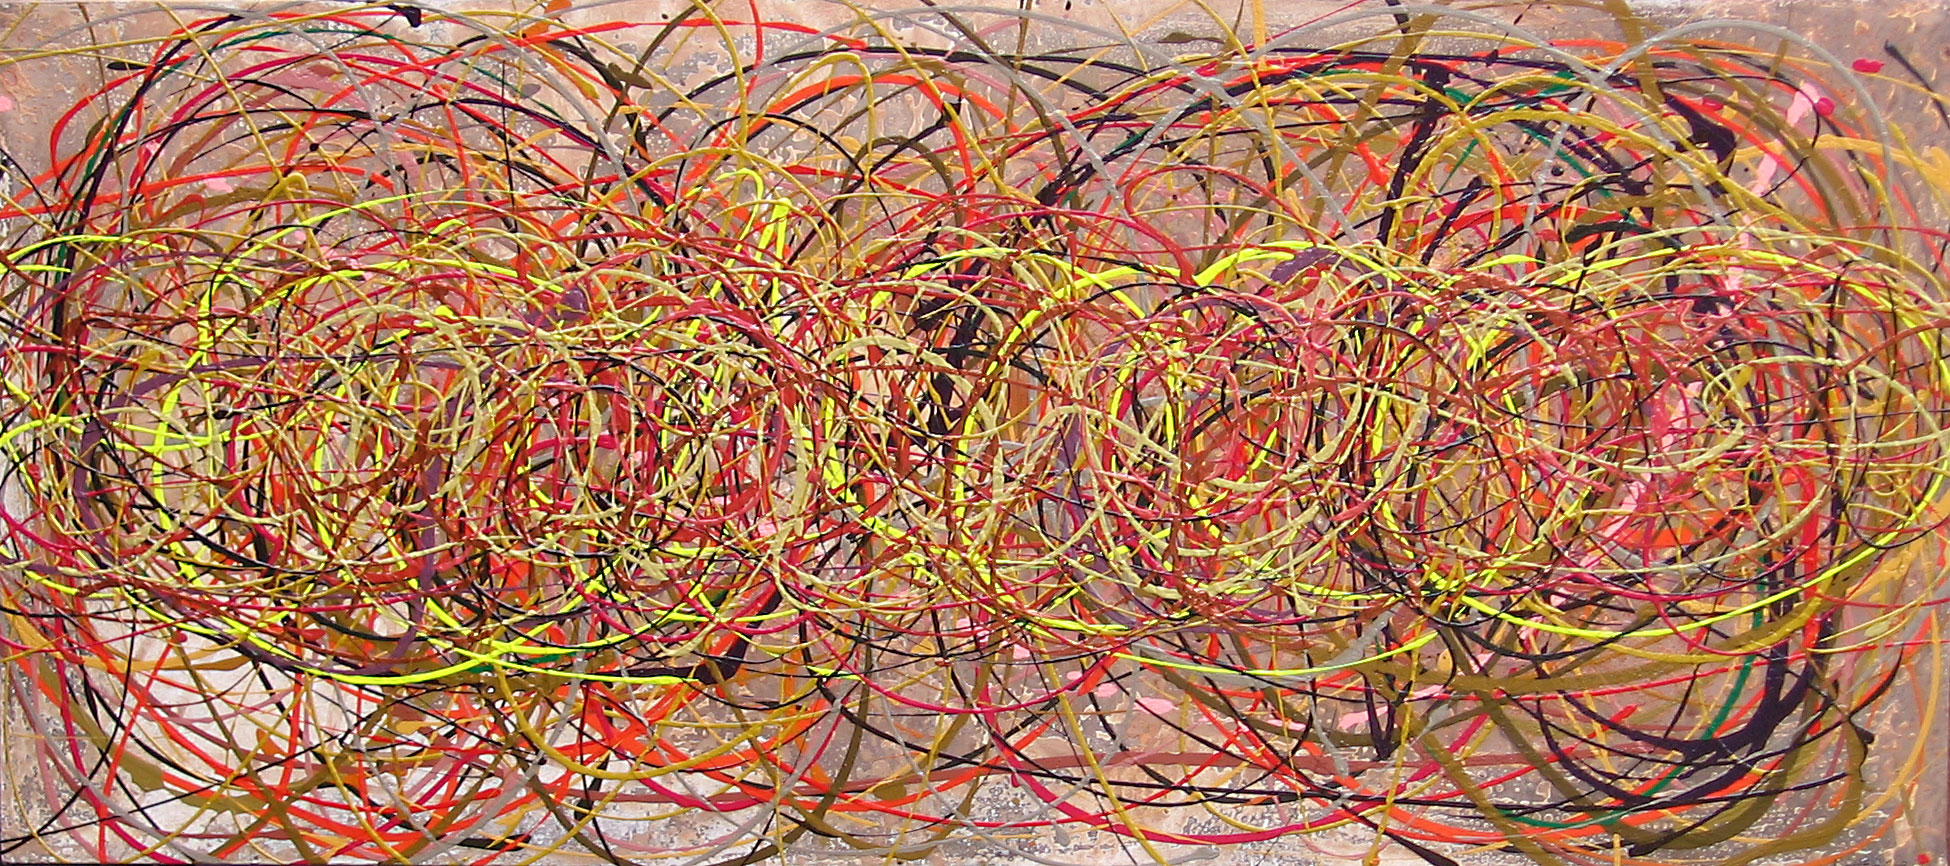 YELLOW TANGLE  NO.532 DATED 2008 BY LUCIEN SIMON